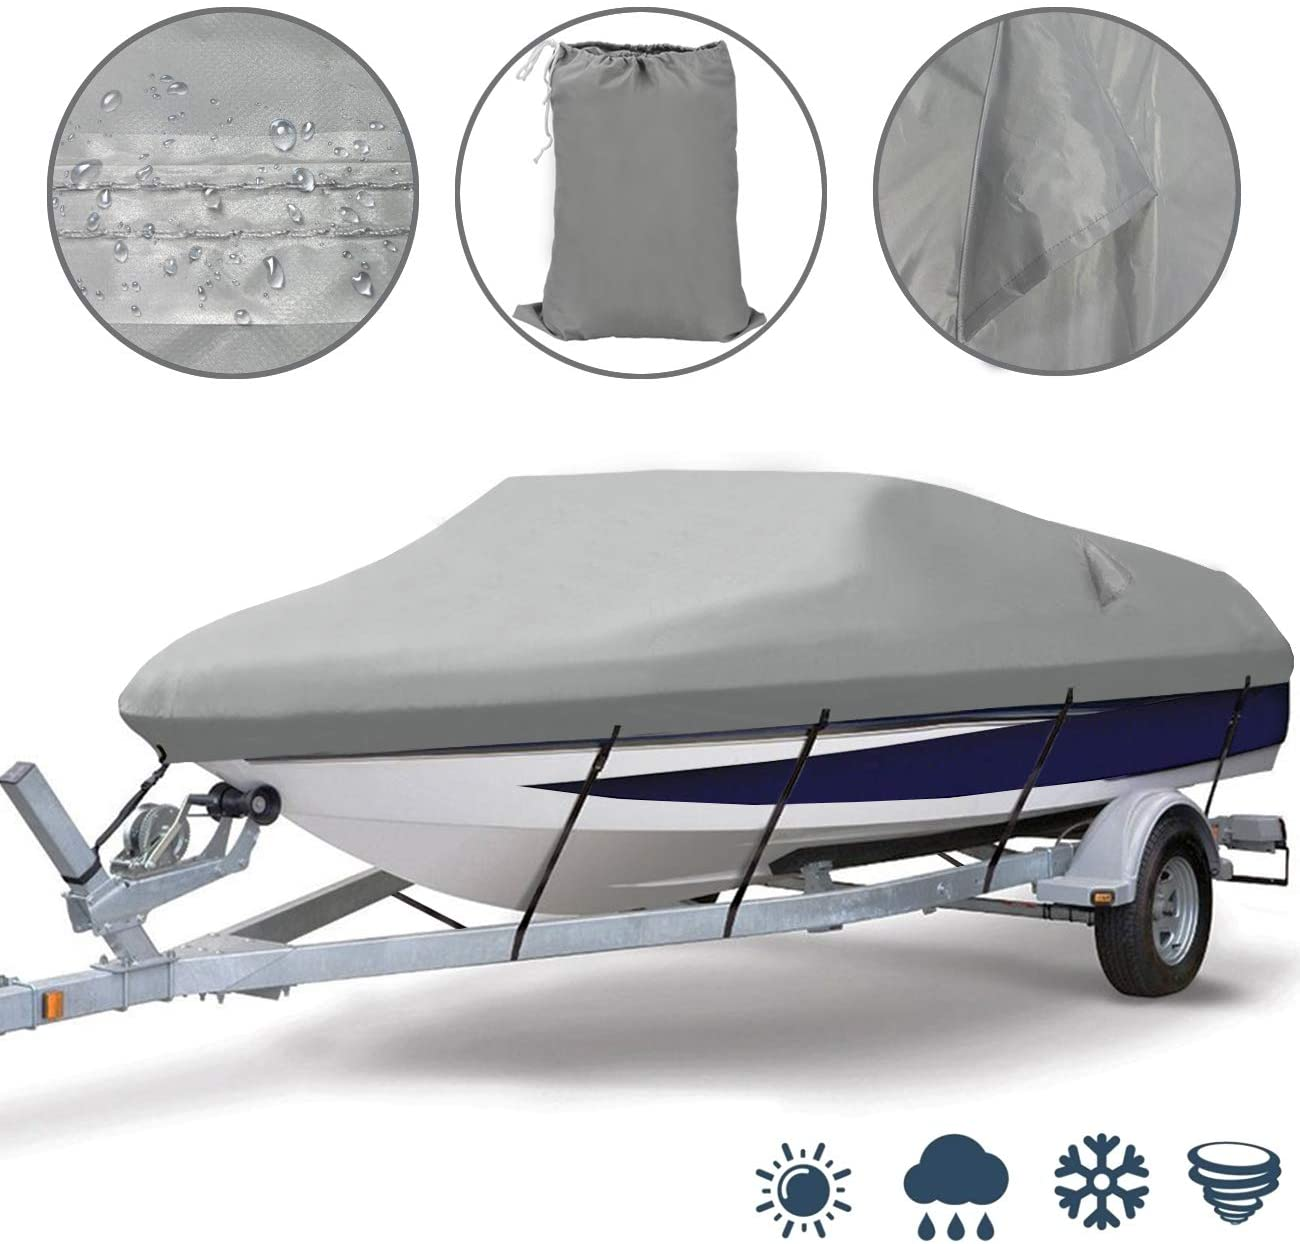 Ogrmar Heavy Duty Trailerable Waterproof Boat Cover with 2 Air V